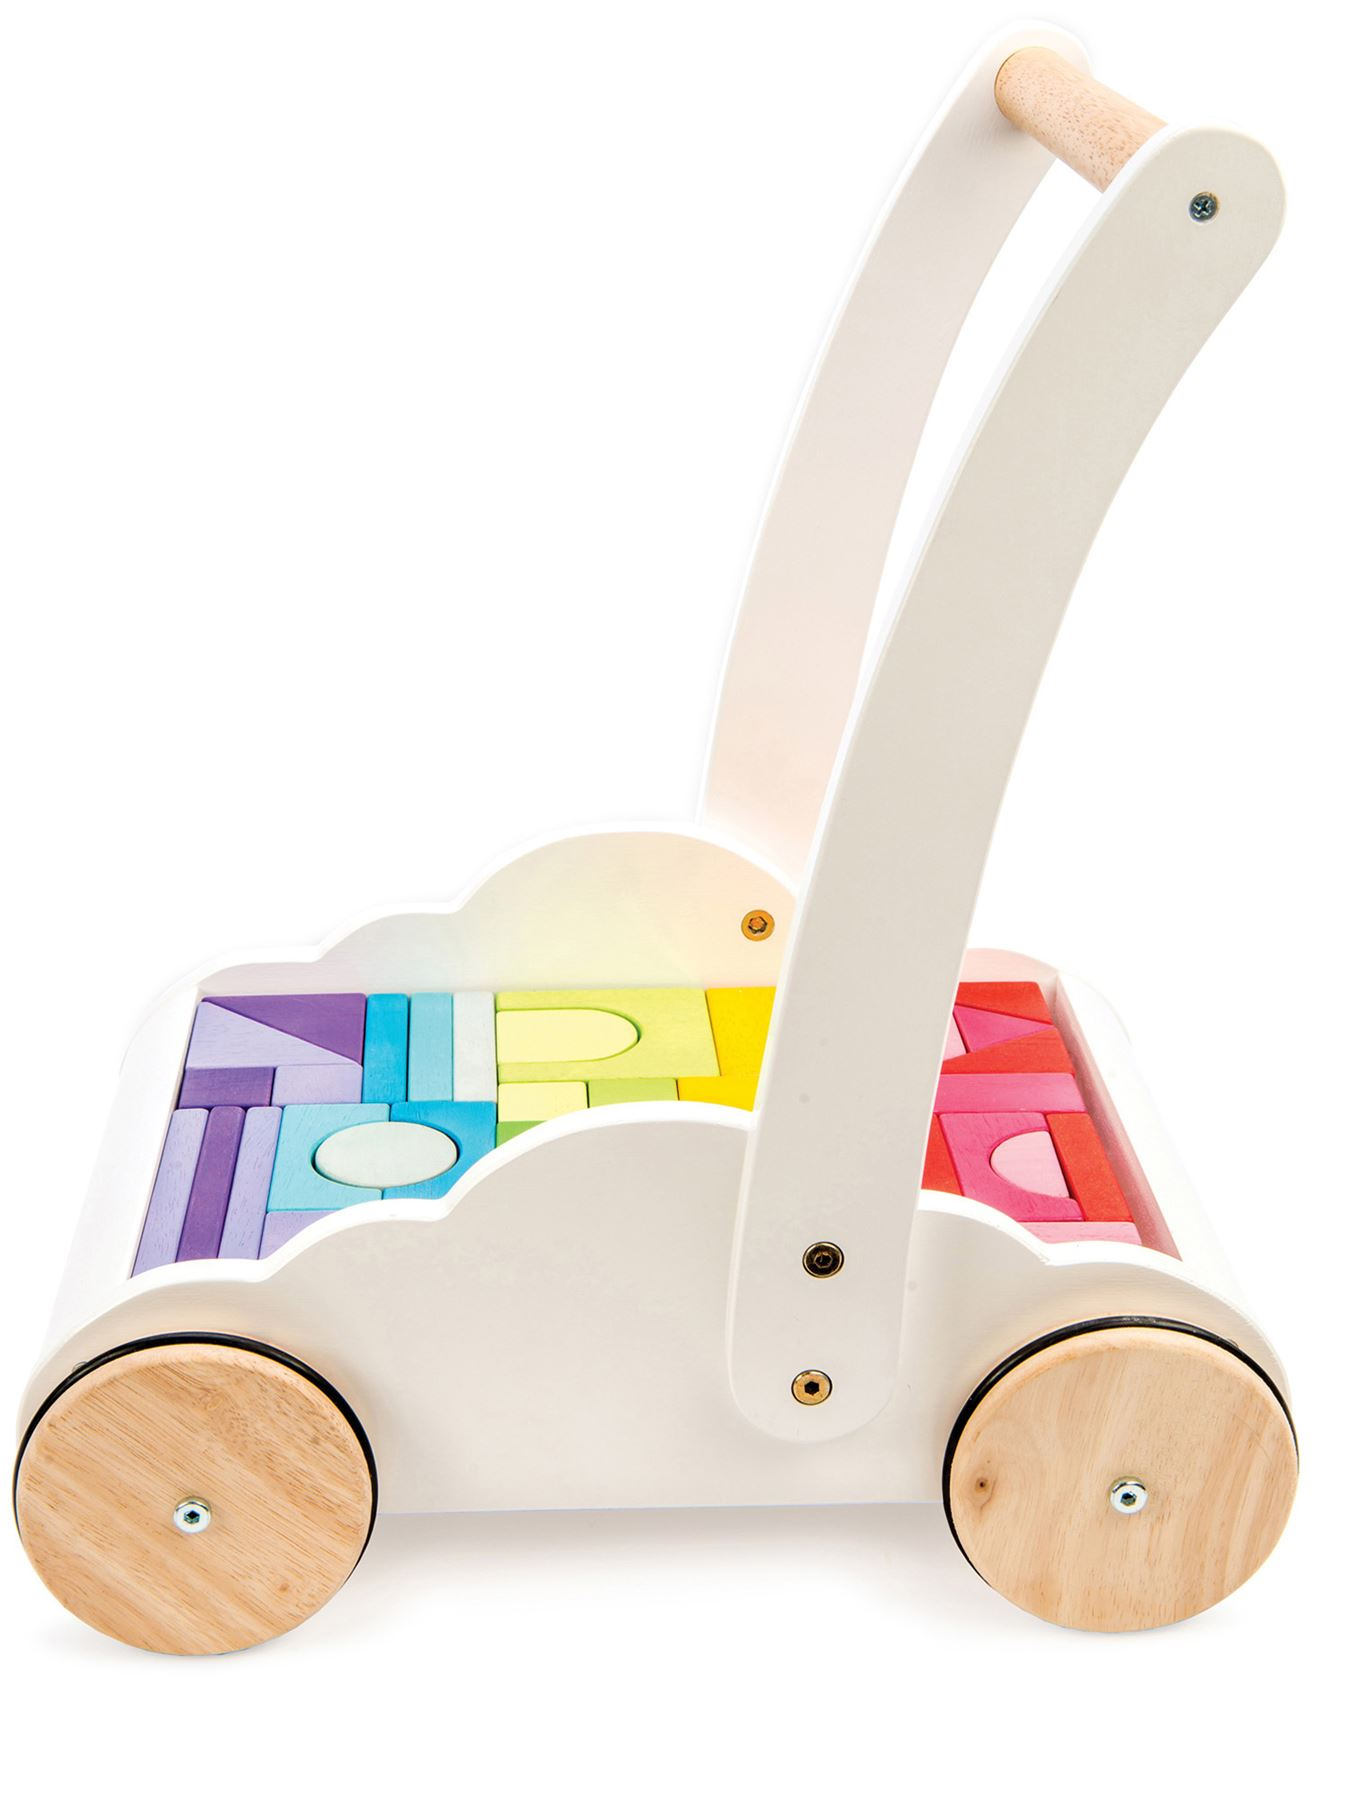 Le Toy Van Petilou BABY RAINBOW CLOUD WALKER Wooden Toy | eBay